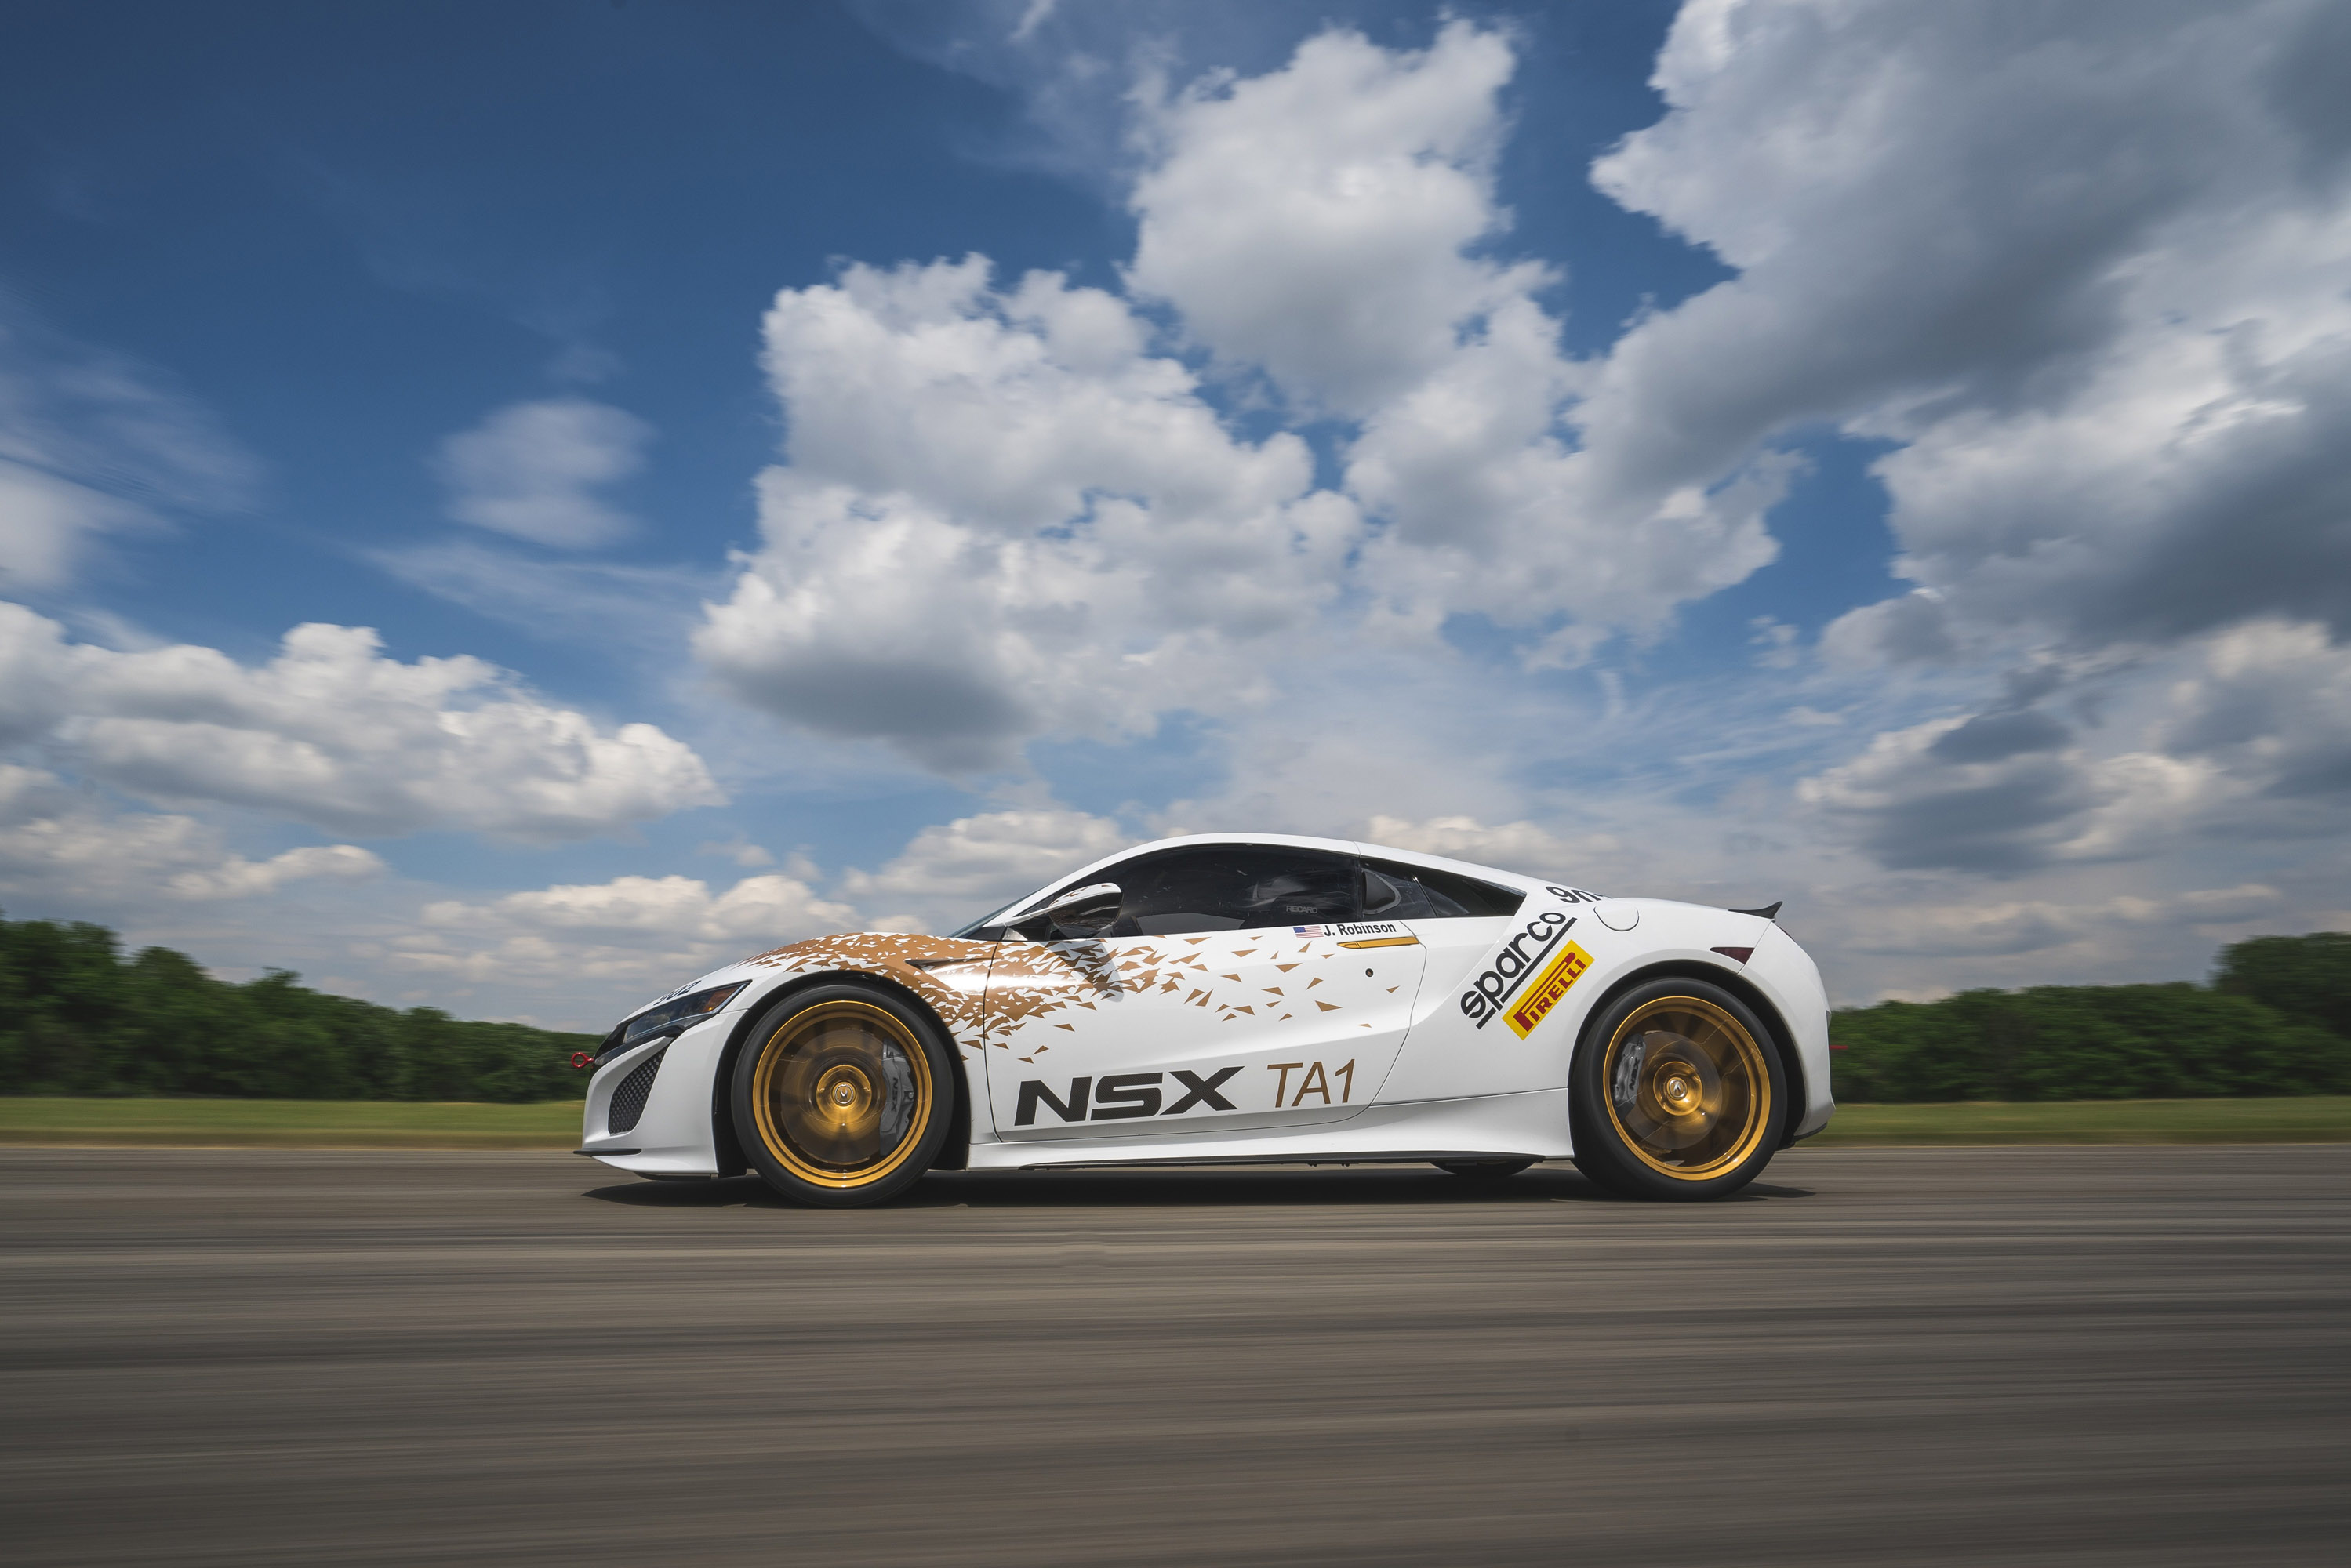 two 2017 acura nsx vehicles will be showcased at pikes peak